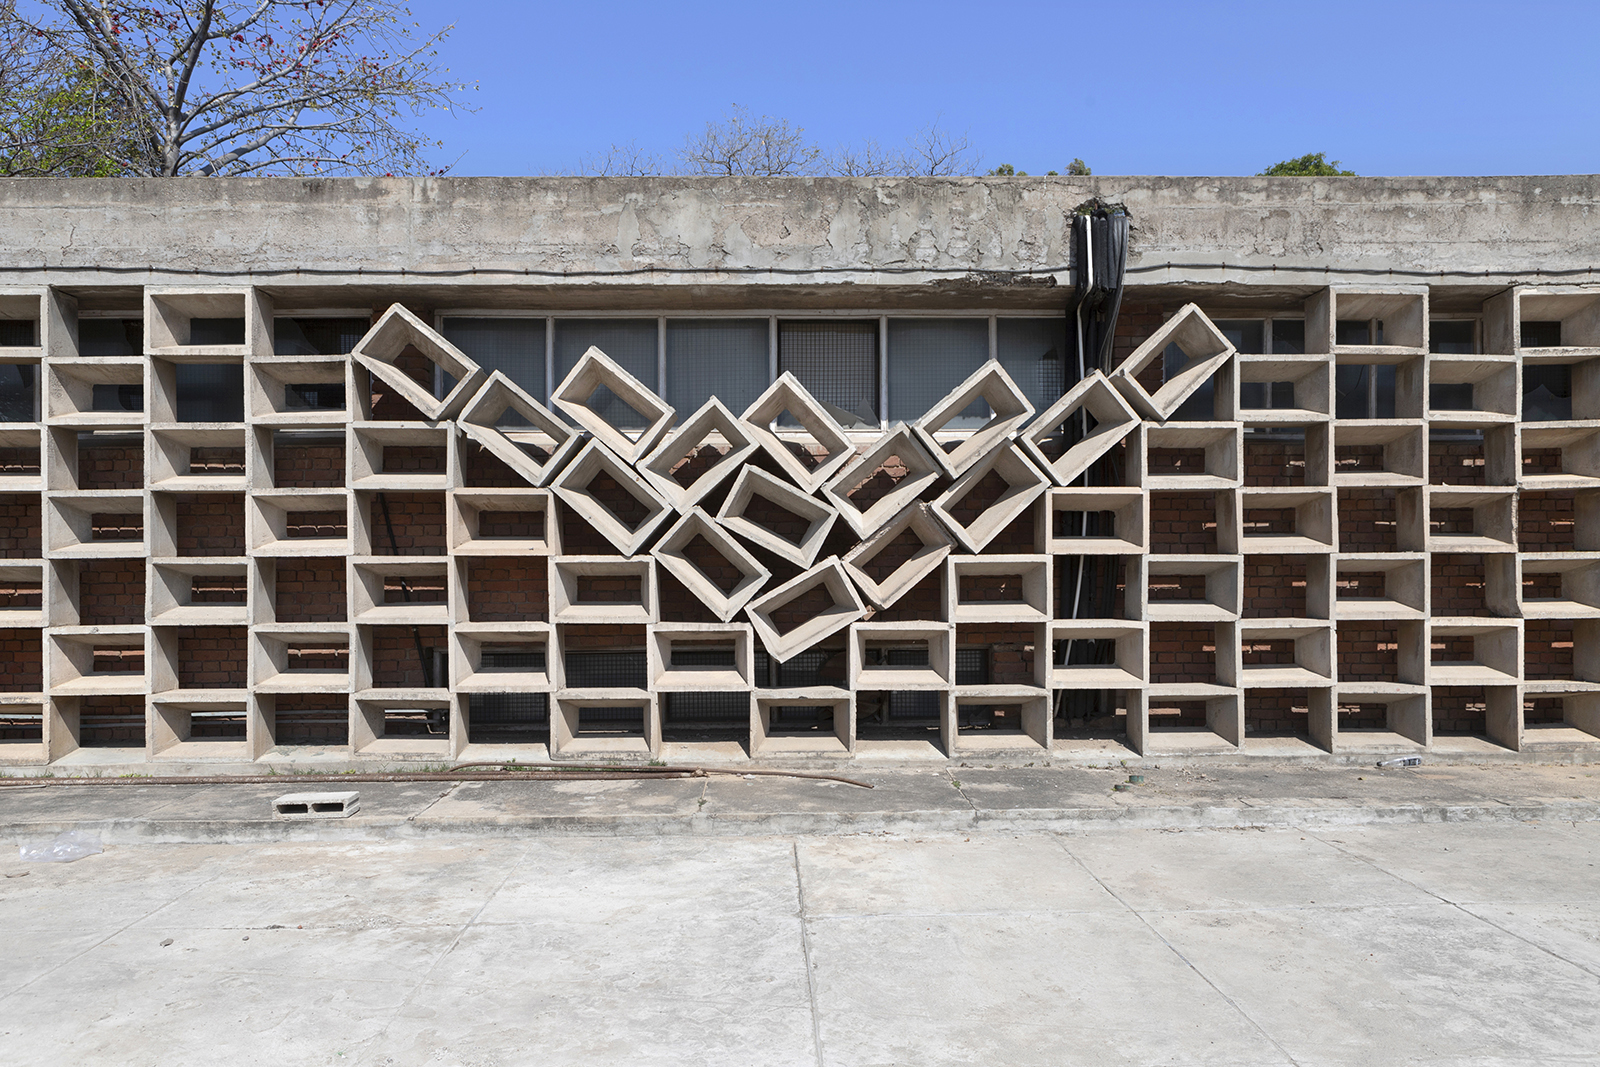 Exterior of a building with stacked concrete blocks and the middle in the shape of a V